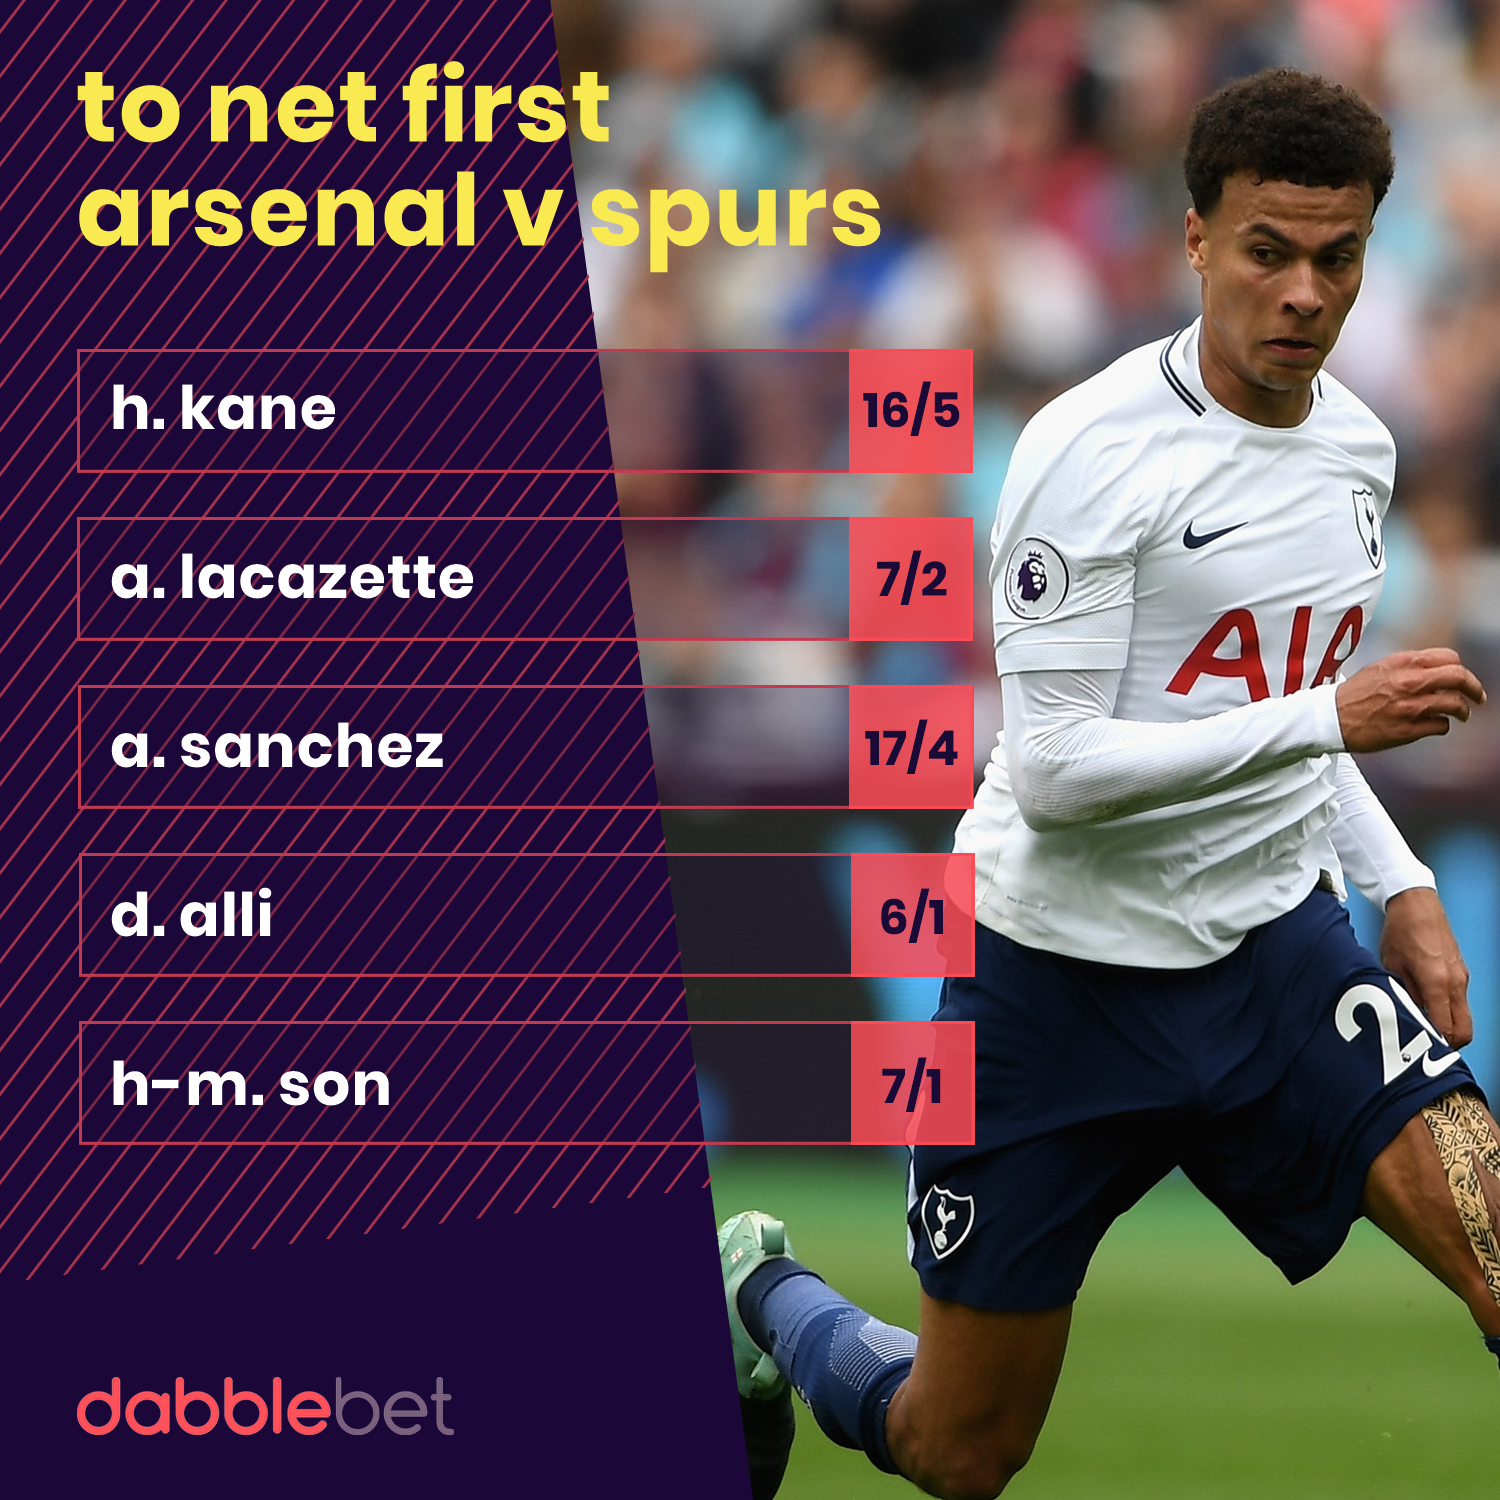 arsenal spurs goalscorer graphic